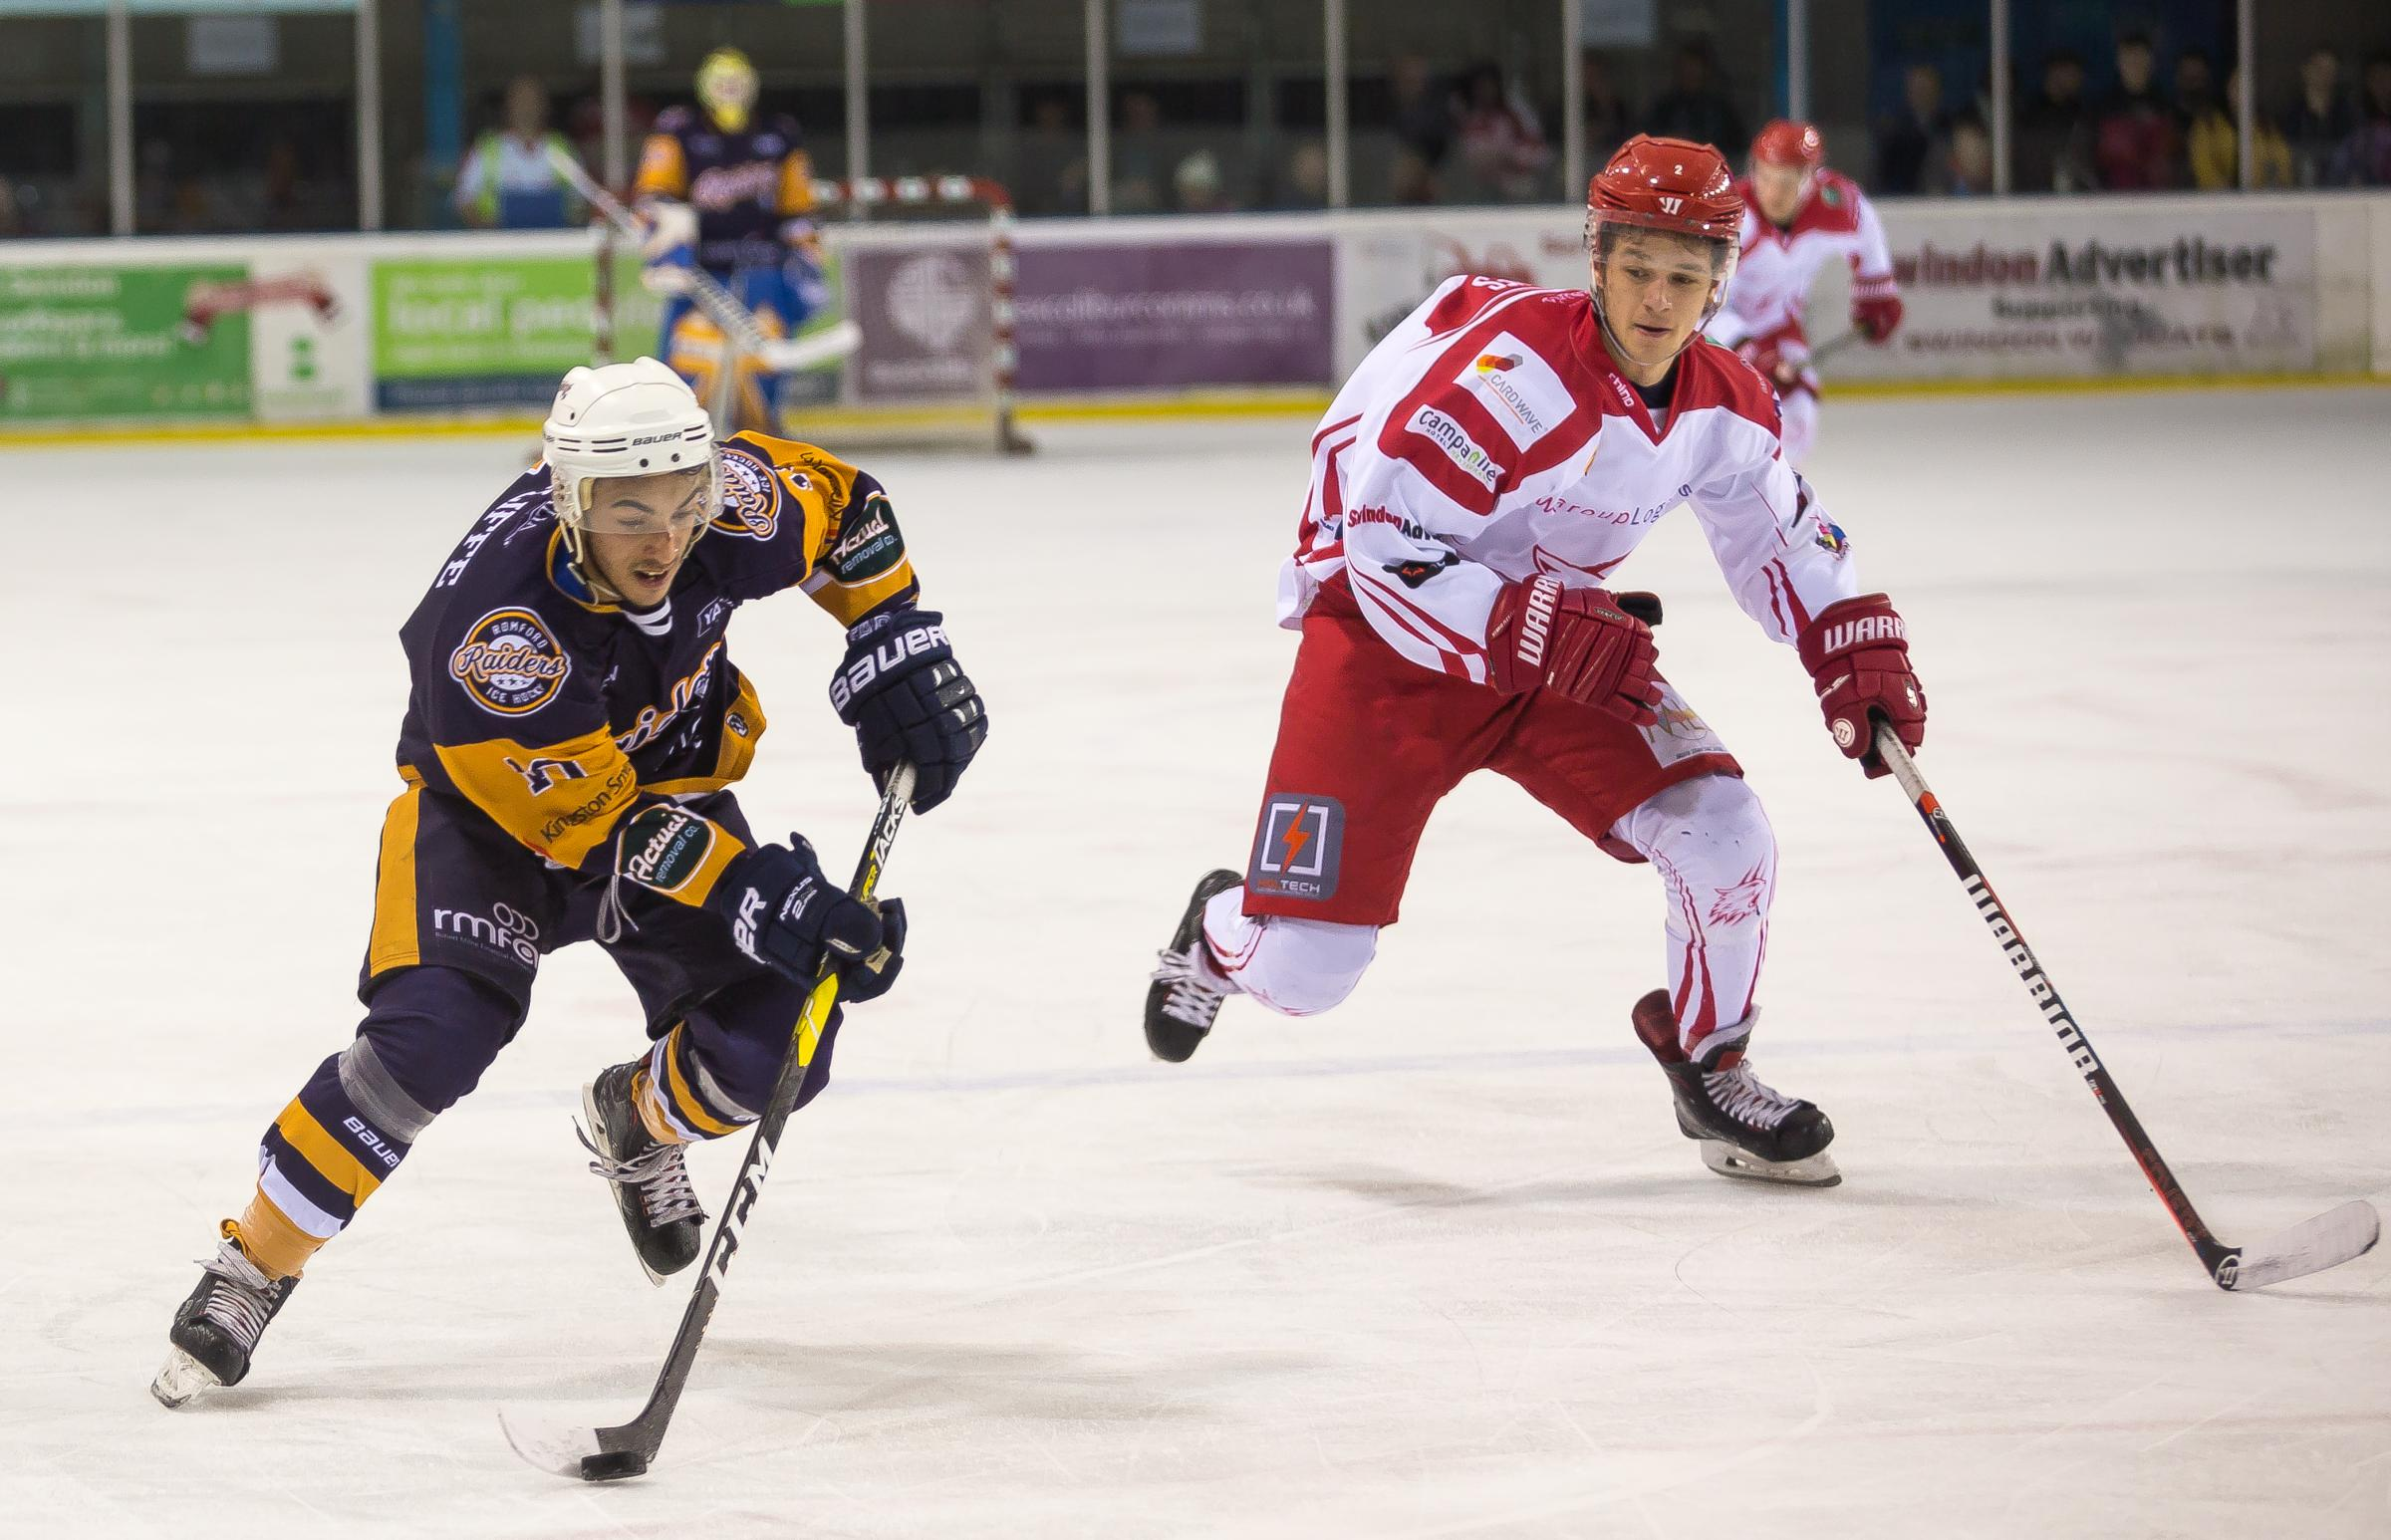 Action from Swindon Wildcats' 6-1 win over Raiders. PICTURE: RYAN AINSCOW